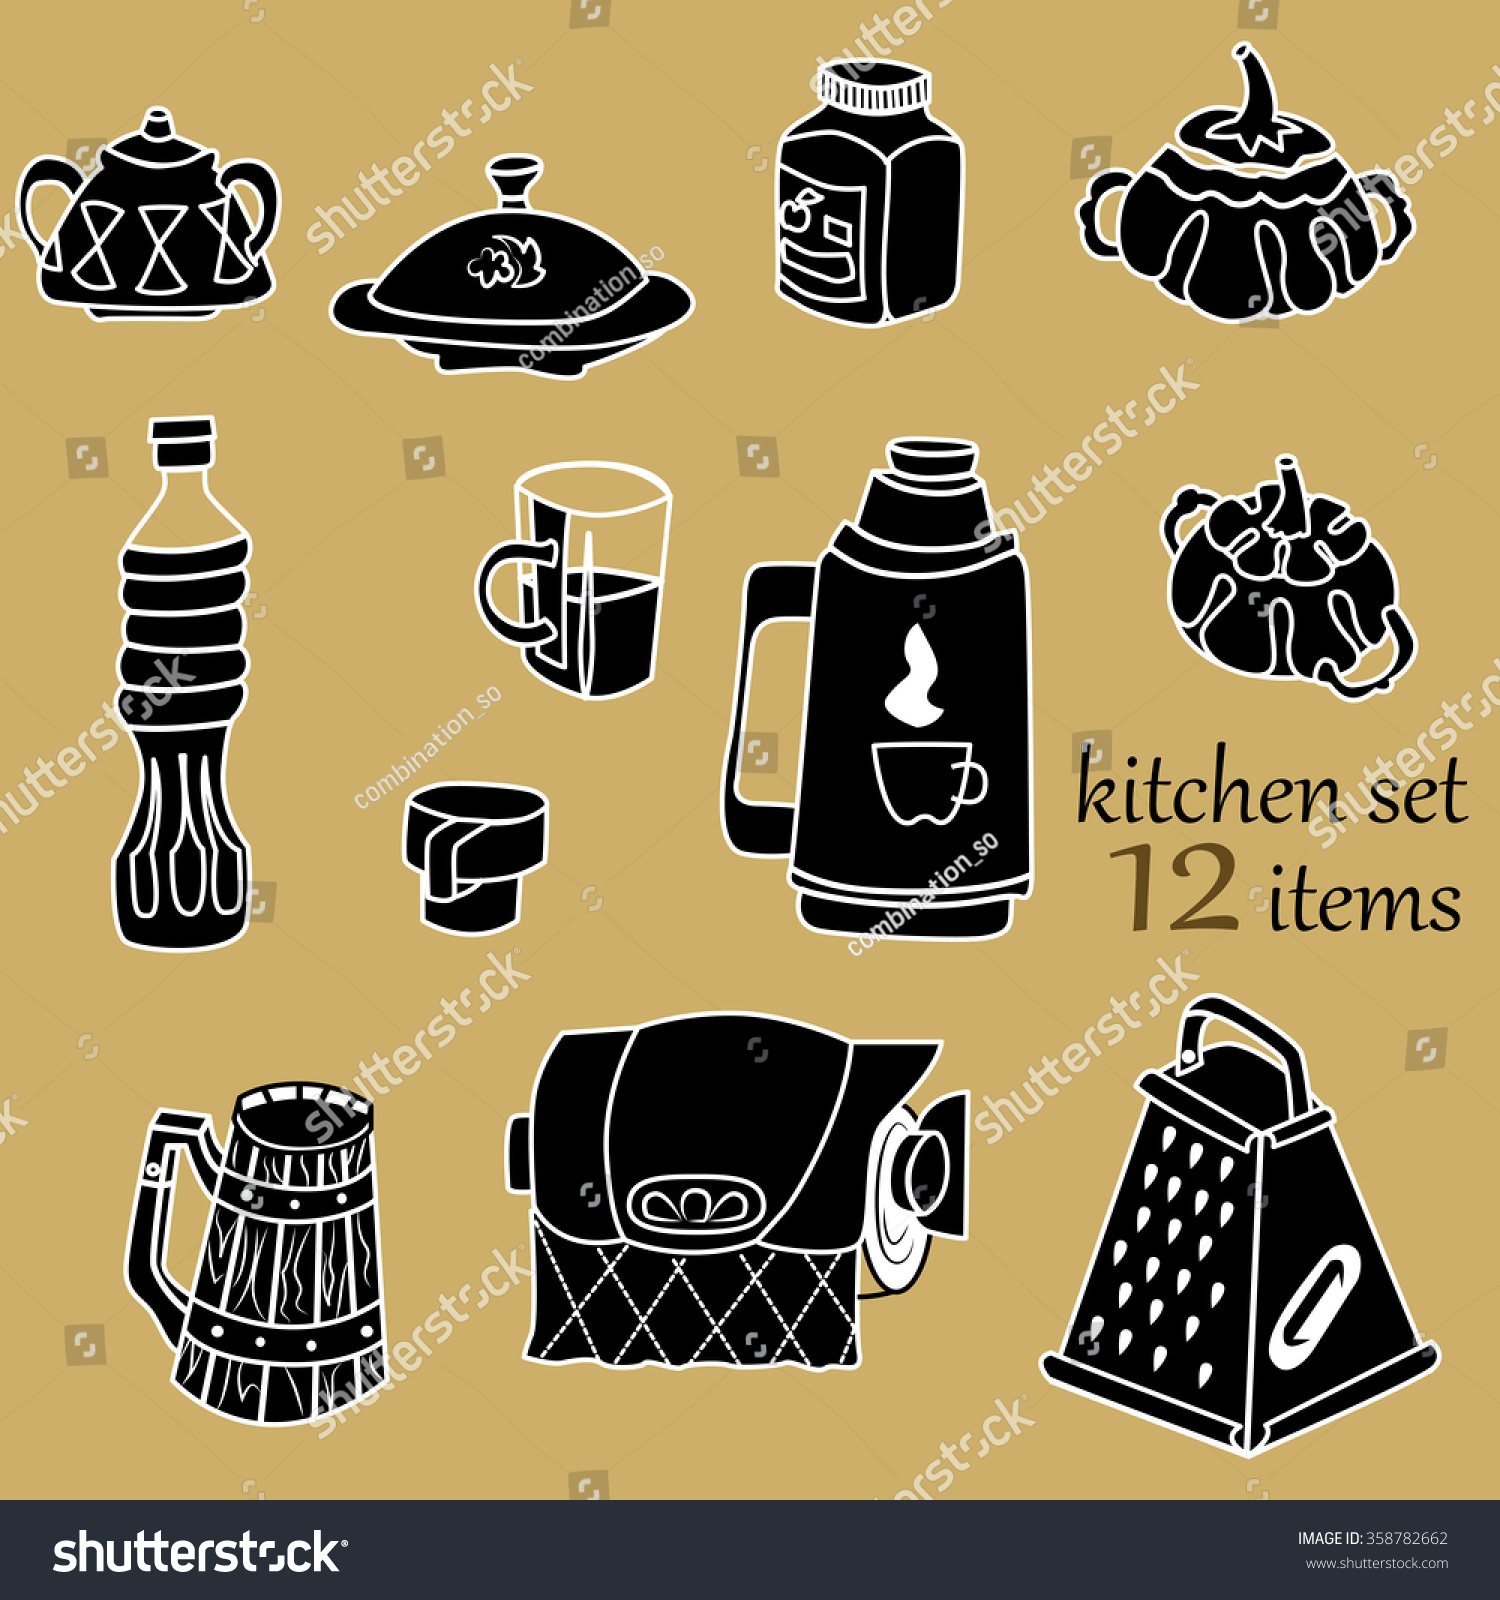 Vector Kitchen Set: Sugar Bowl, Thermos, Jar Of Jam, Paper Towels.